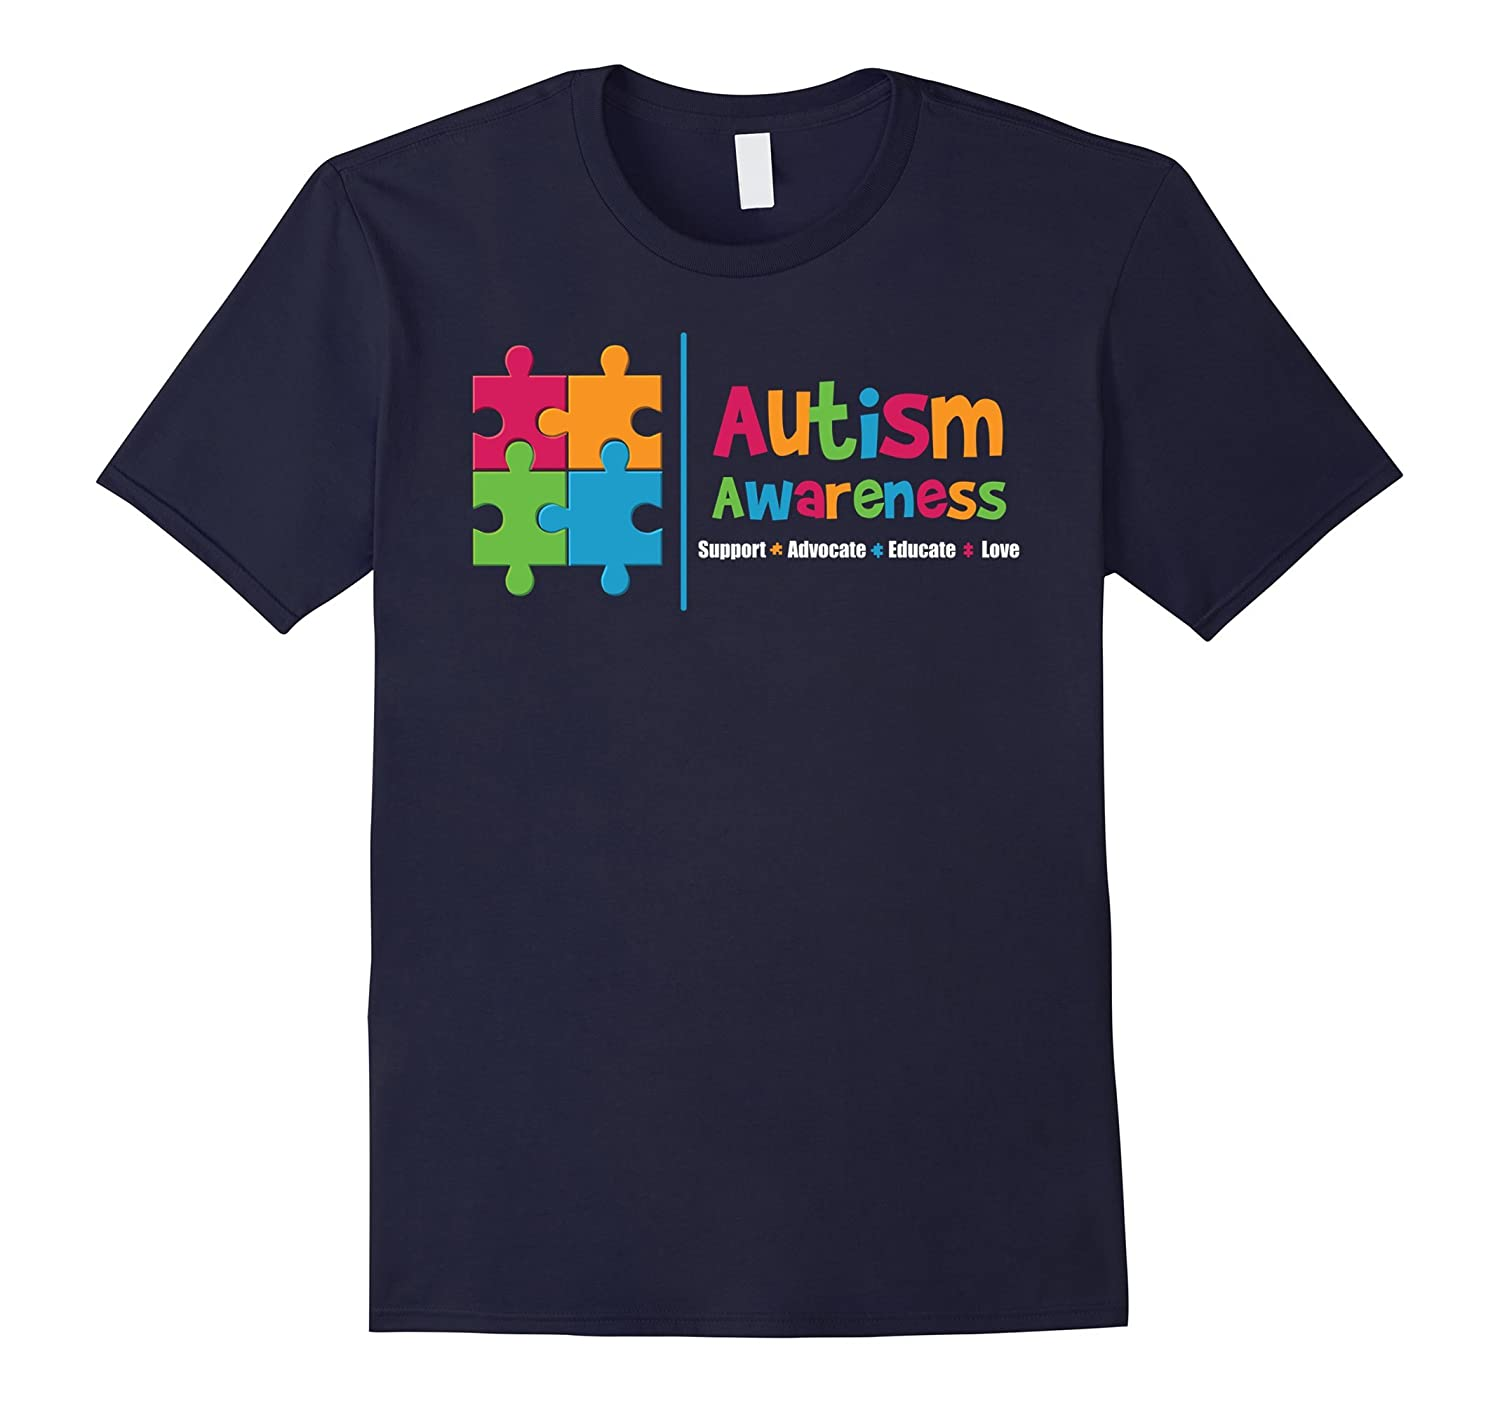 Autism Awareness Support Advocate Love Educate - T Shirt-BN